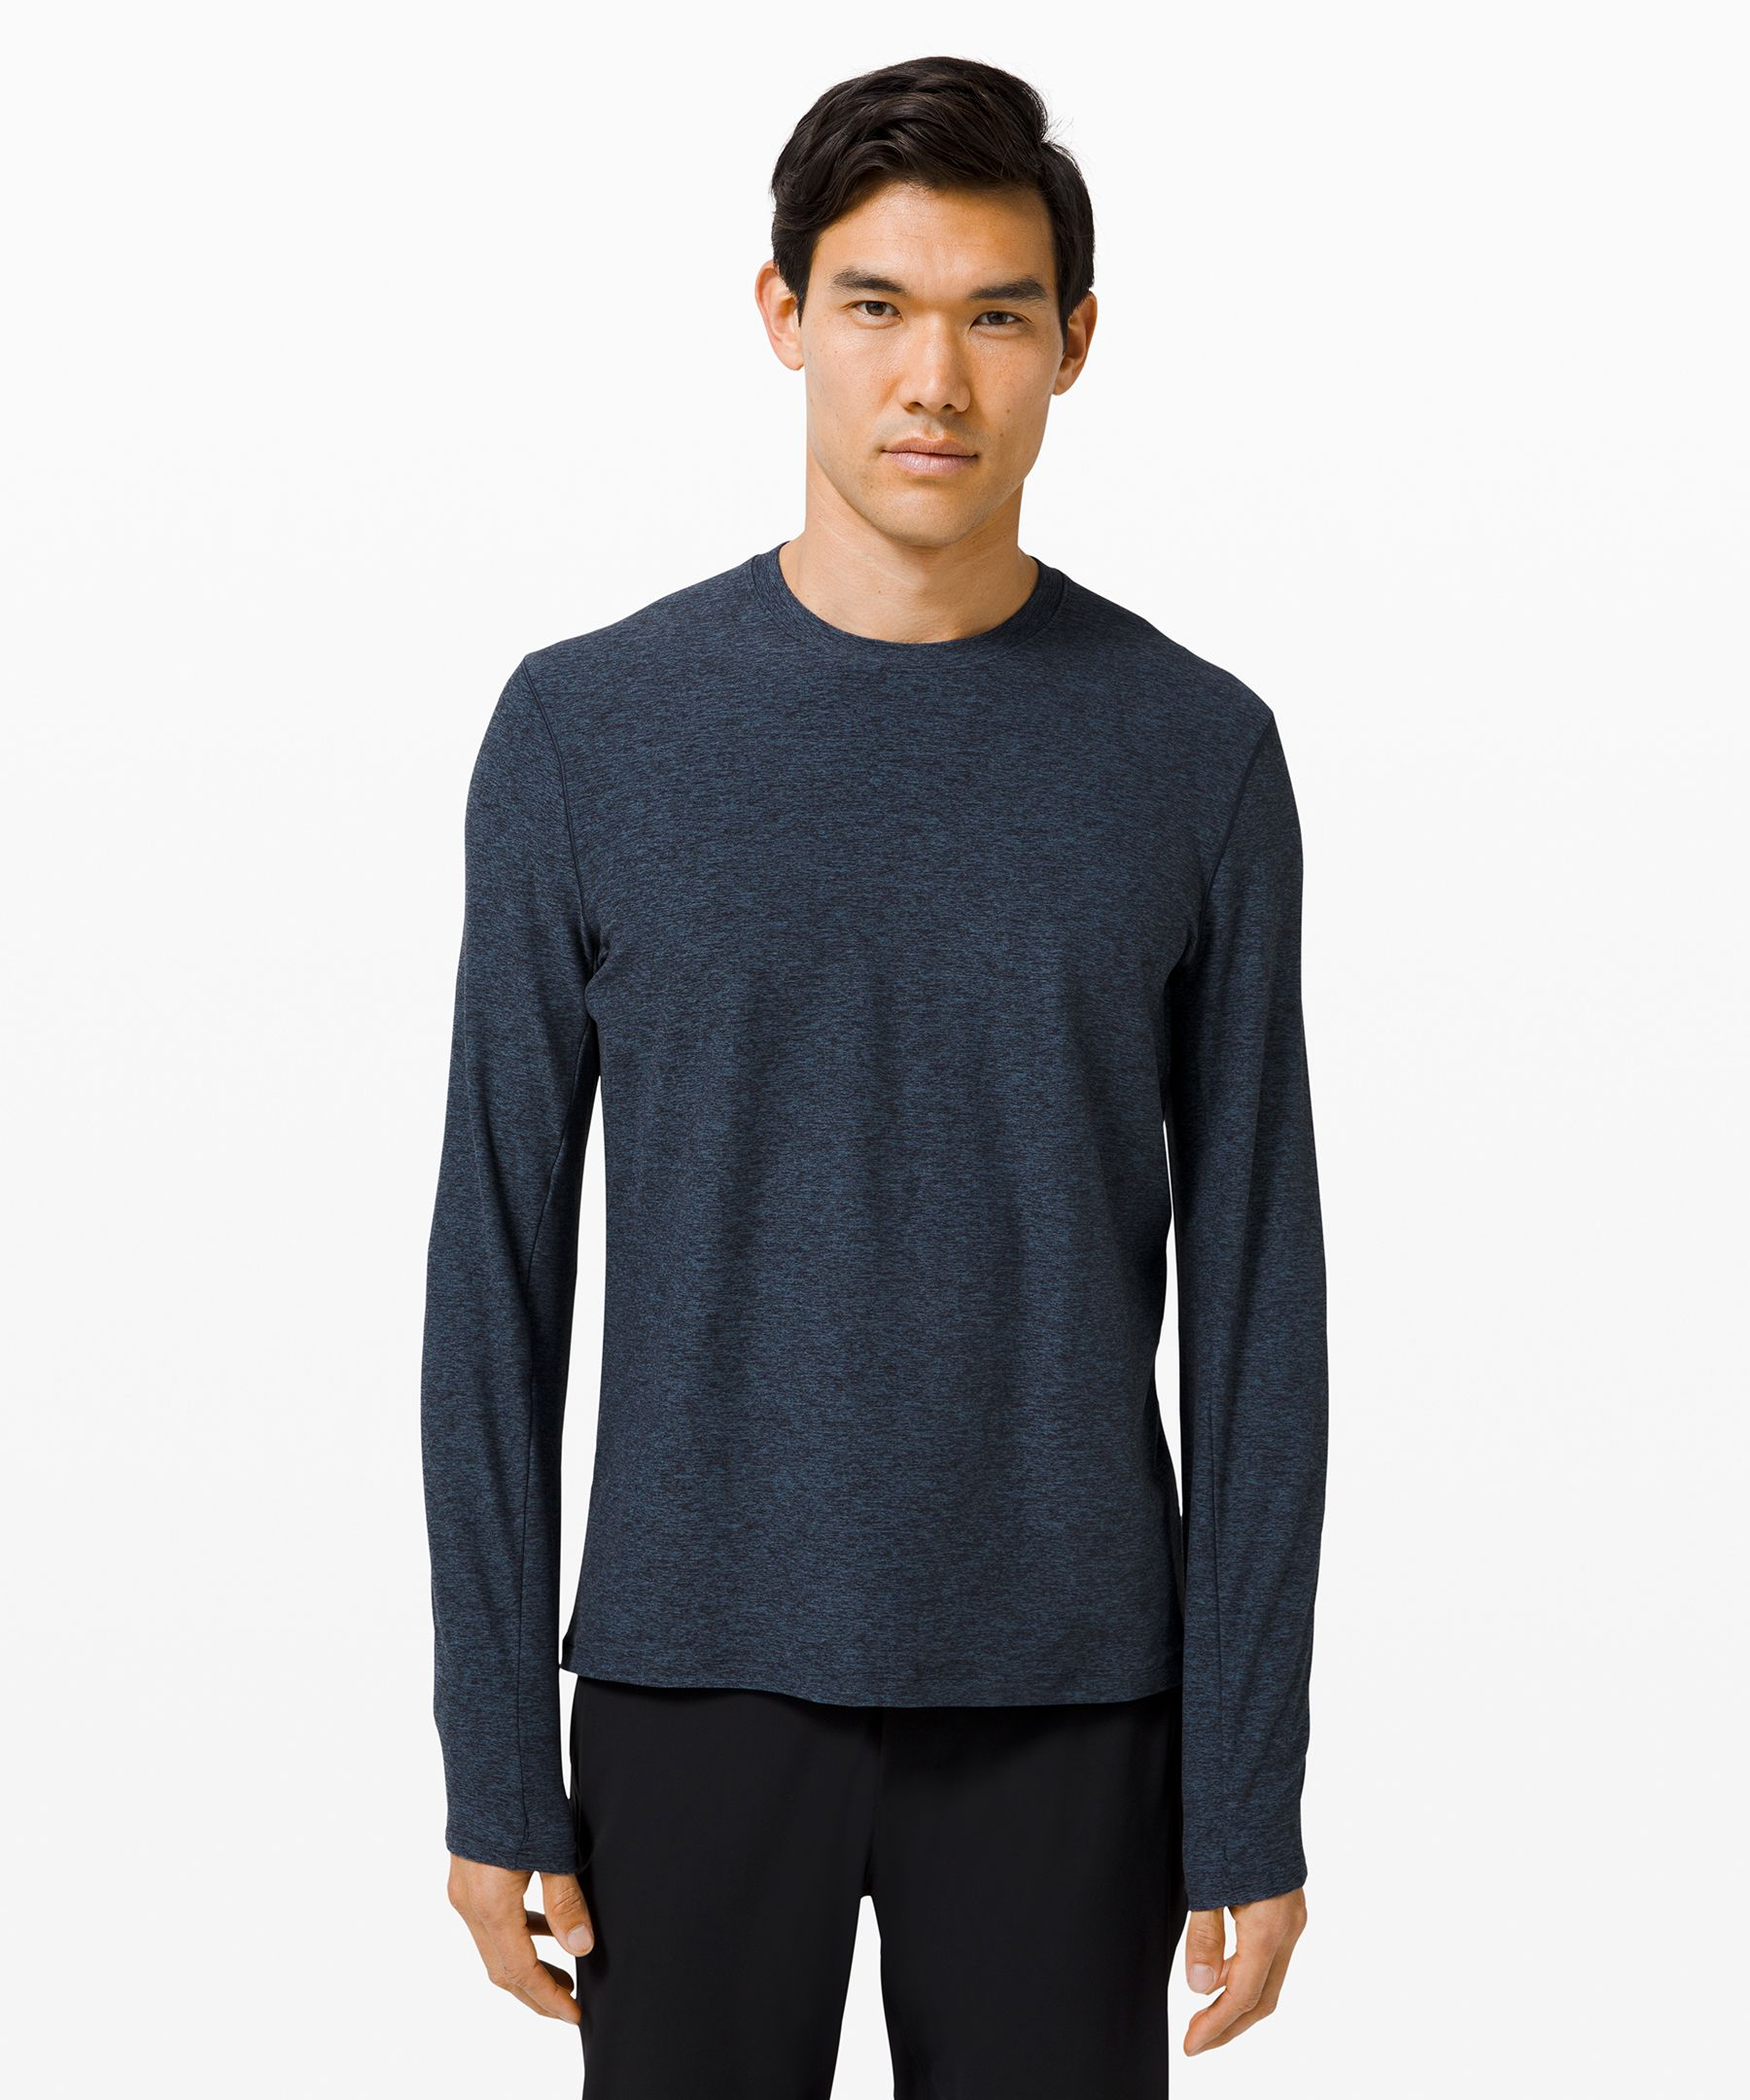 Stay warm and visible as you  power through late night runs  in this long sleeve that  features reflective detailing.